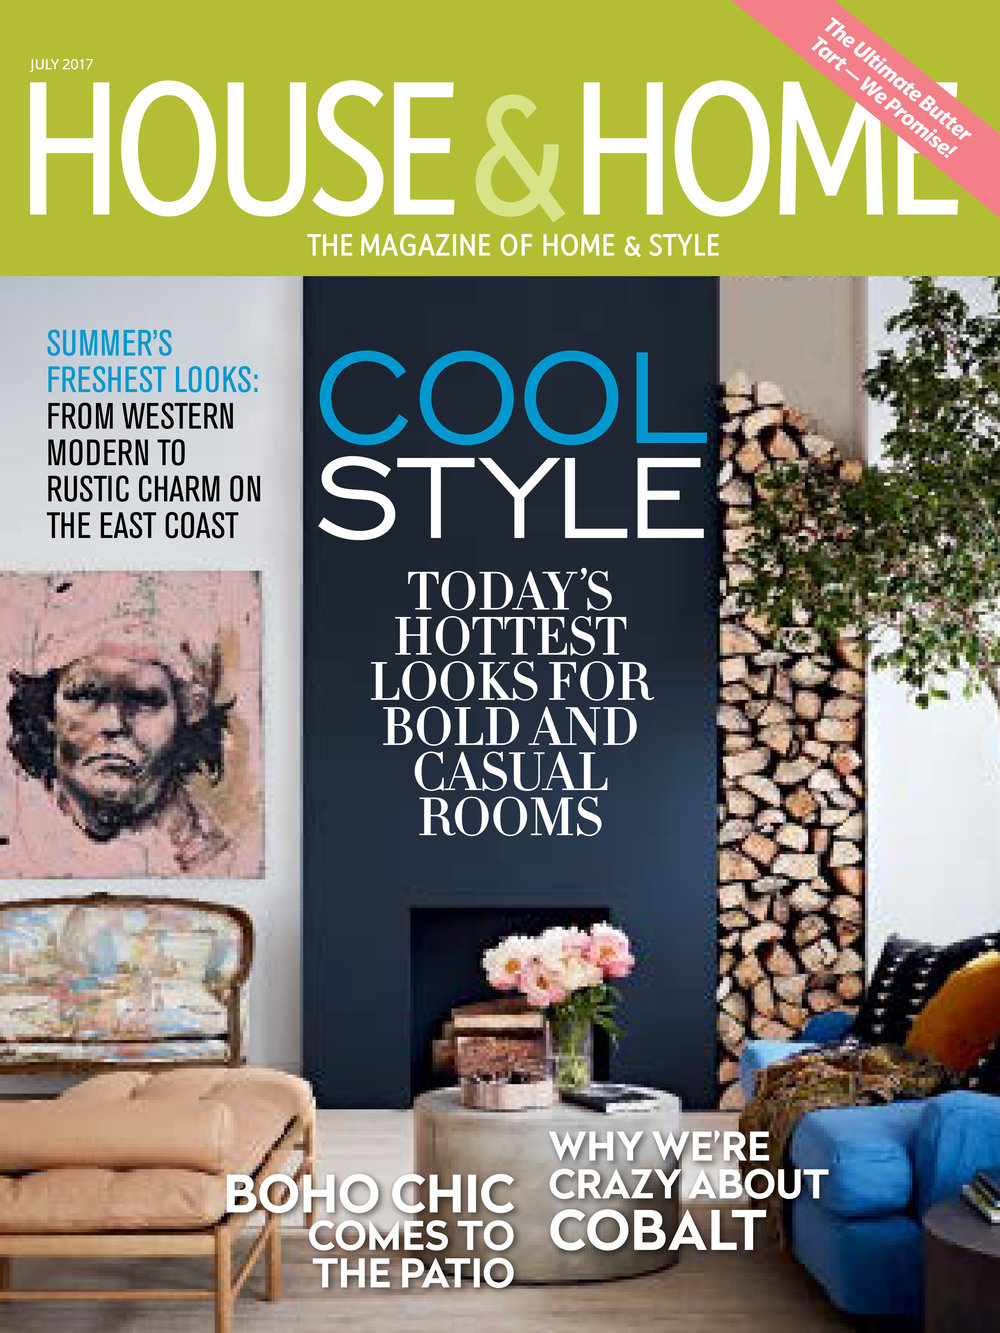 House & Home - July 2017